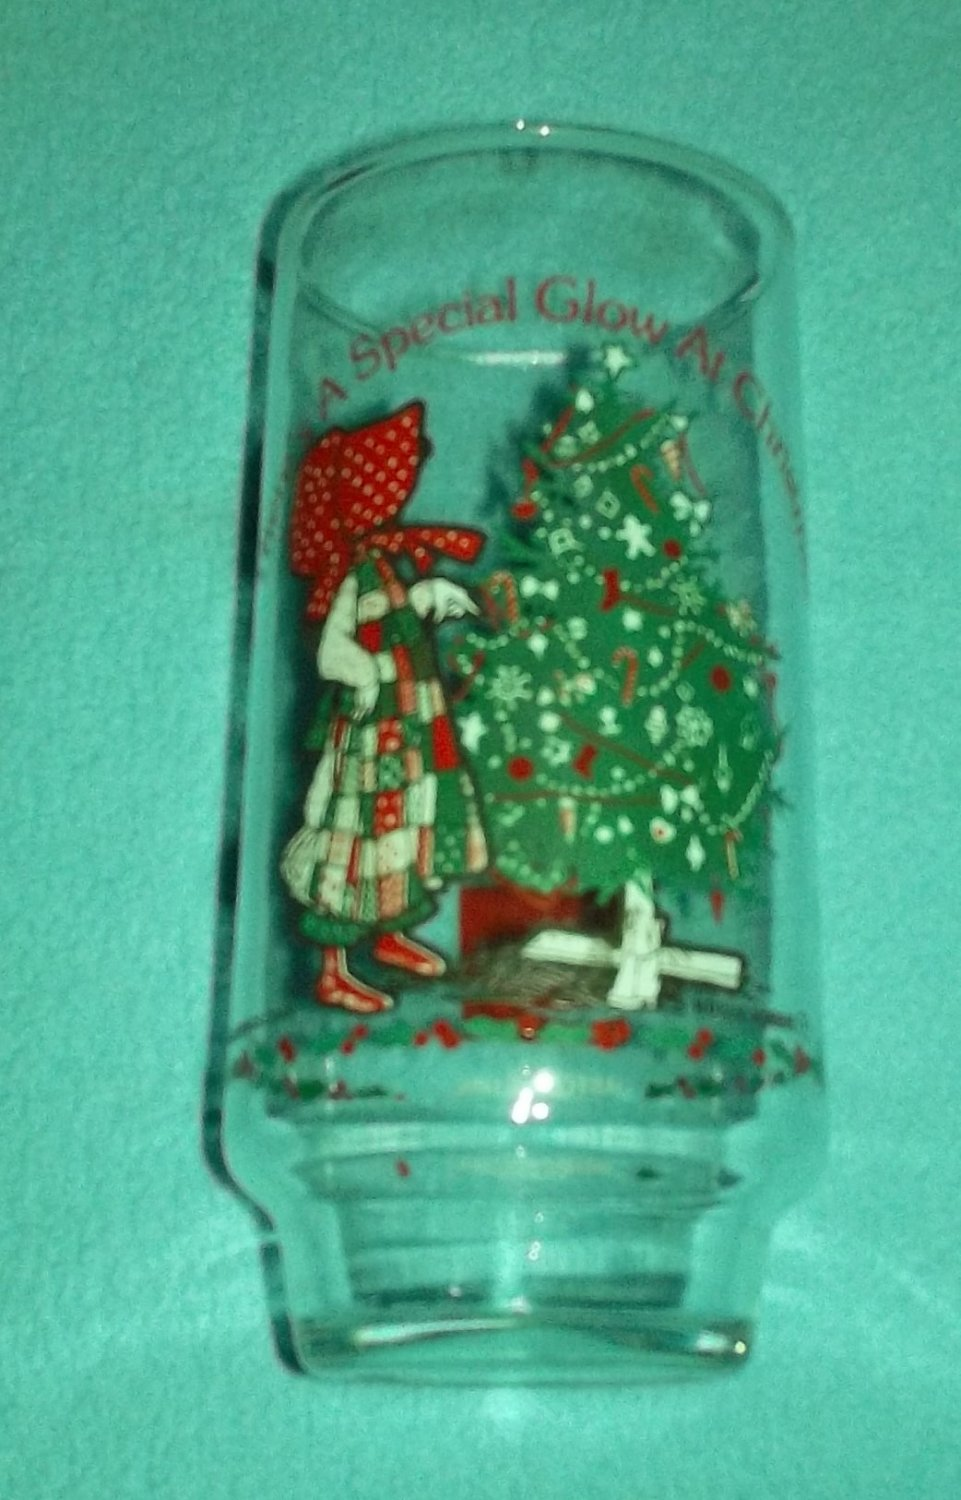 HOLLY HOBBIE COCA COLA CHRISTMAS PROMOTIONAL ADVERTISING GLASS Special Glow